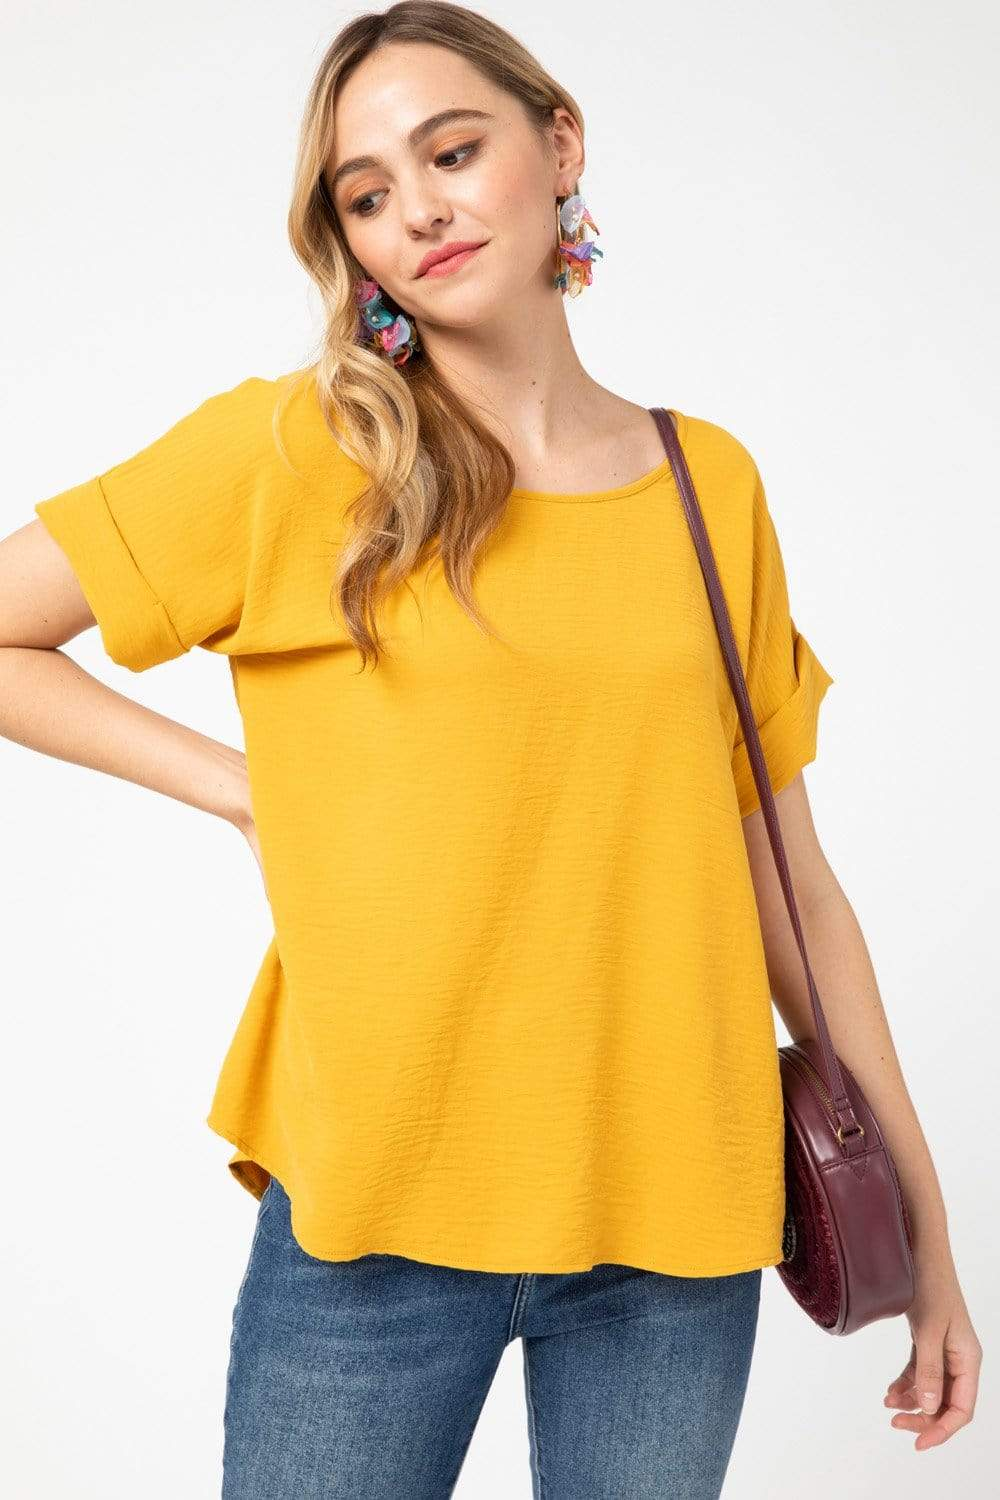 Entro Dressy Scoop Neck Rolled Short Sleeve Top - Mustard